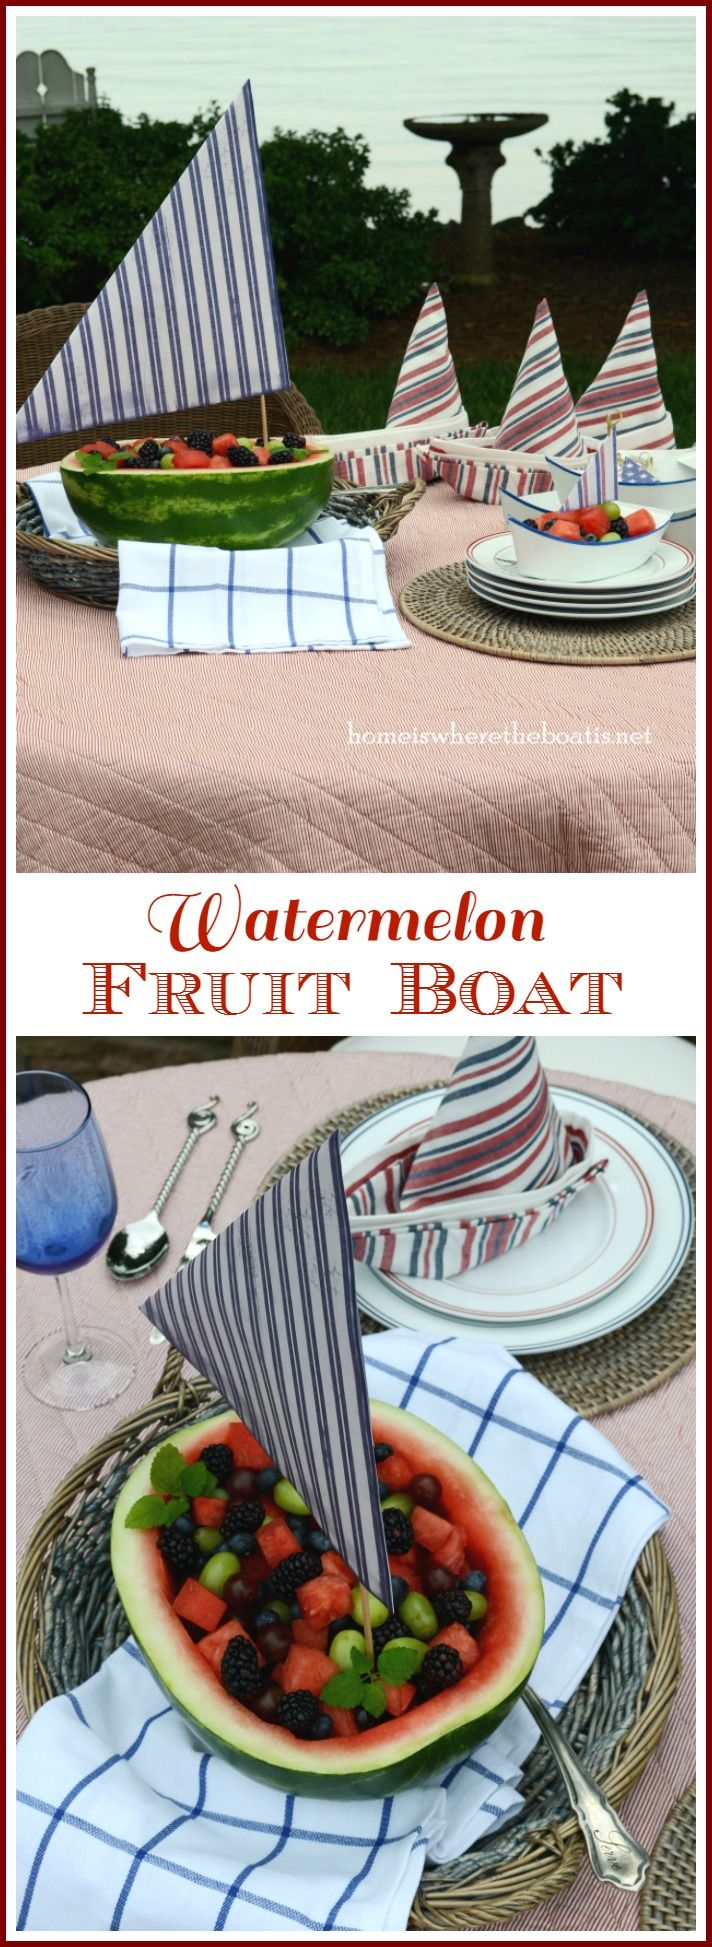 Watermelon Boat! Hoist a sail with a dowel and scrapbook paper to transform a watermelon into a vessel for serving a medley of fruit | homeiswheretheboatis.net #summer #nautical